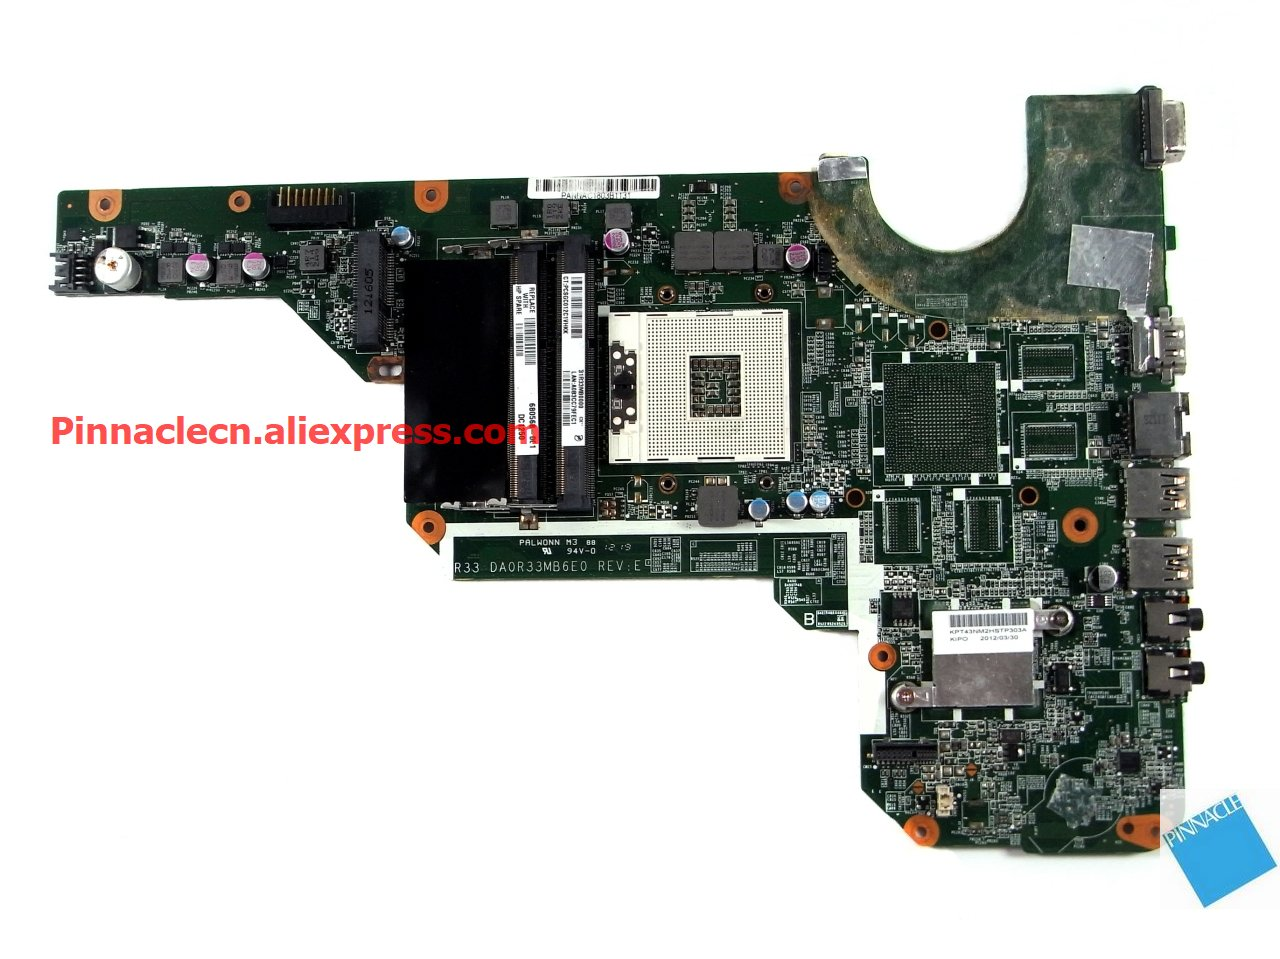 680568-001 motherboard For HP Pavilion G4 G6 G7-2000 R33 DA0R33MB6E0 laptop motherboard for hp pavilion g4 g6 g7 2000 g6 2000 g4 2000 motherboard da0r33mb6e0 680568 001